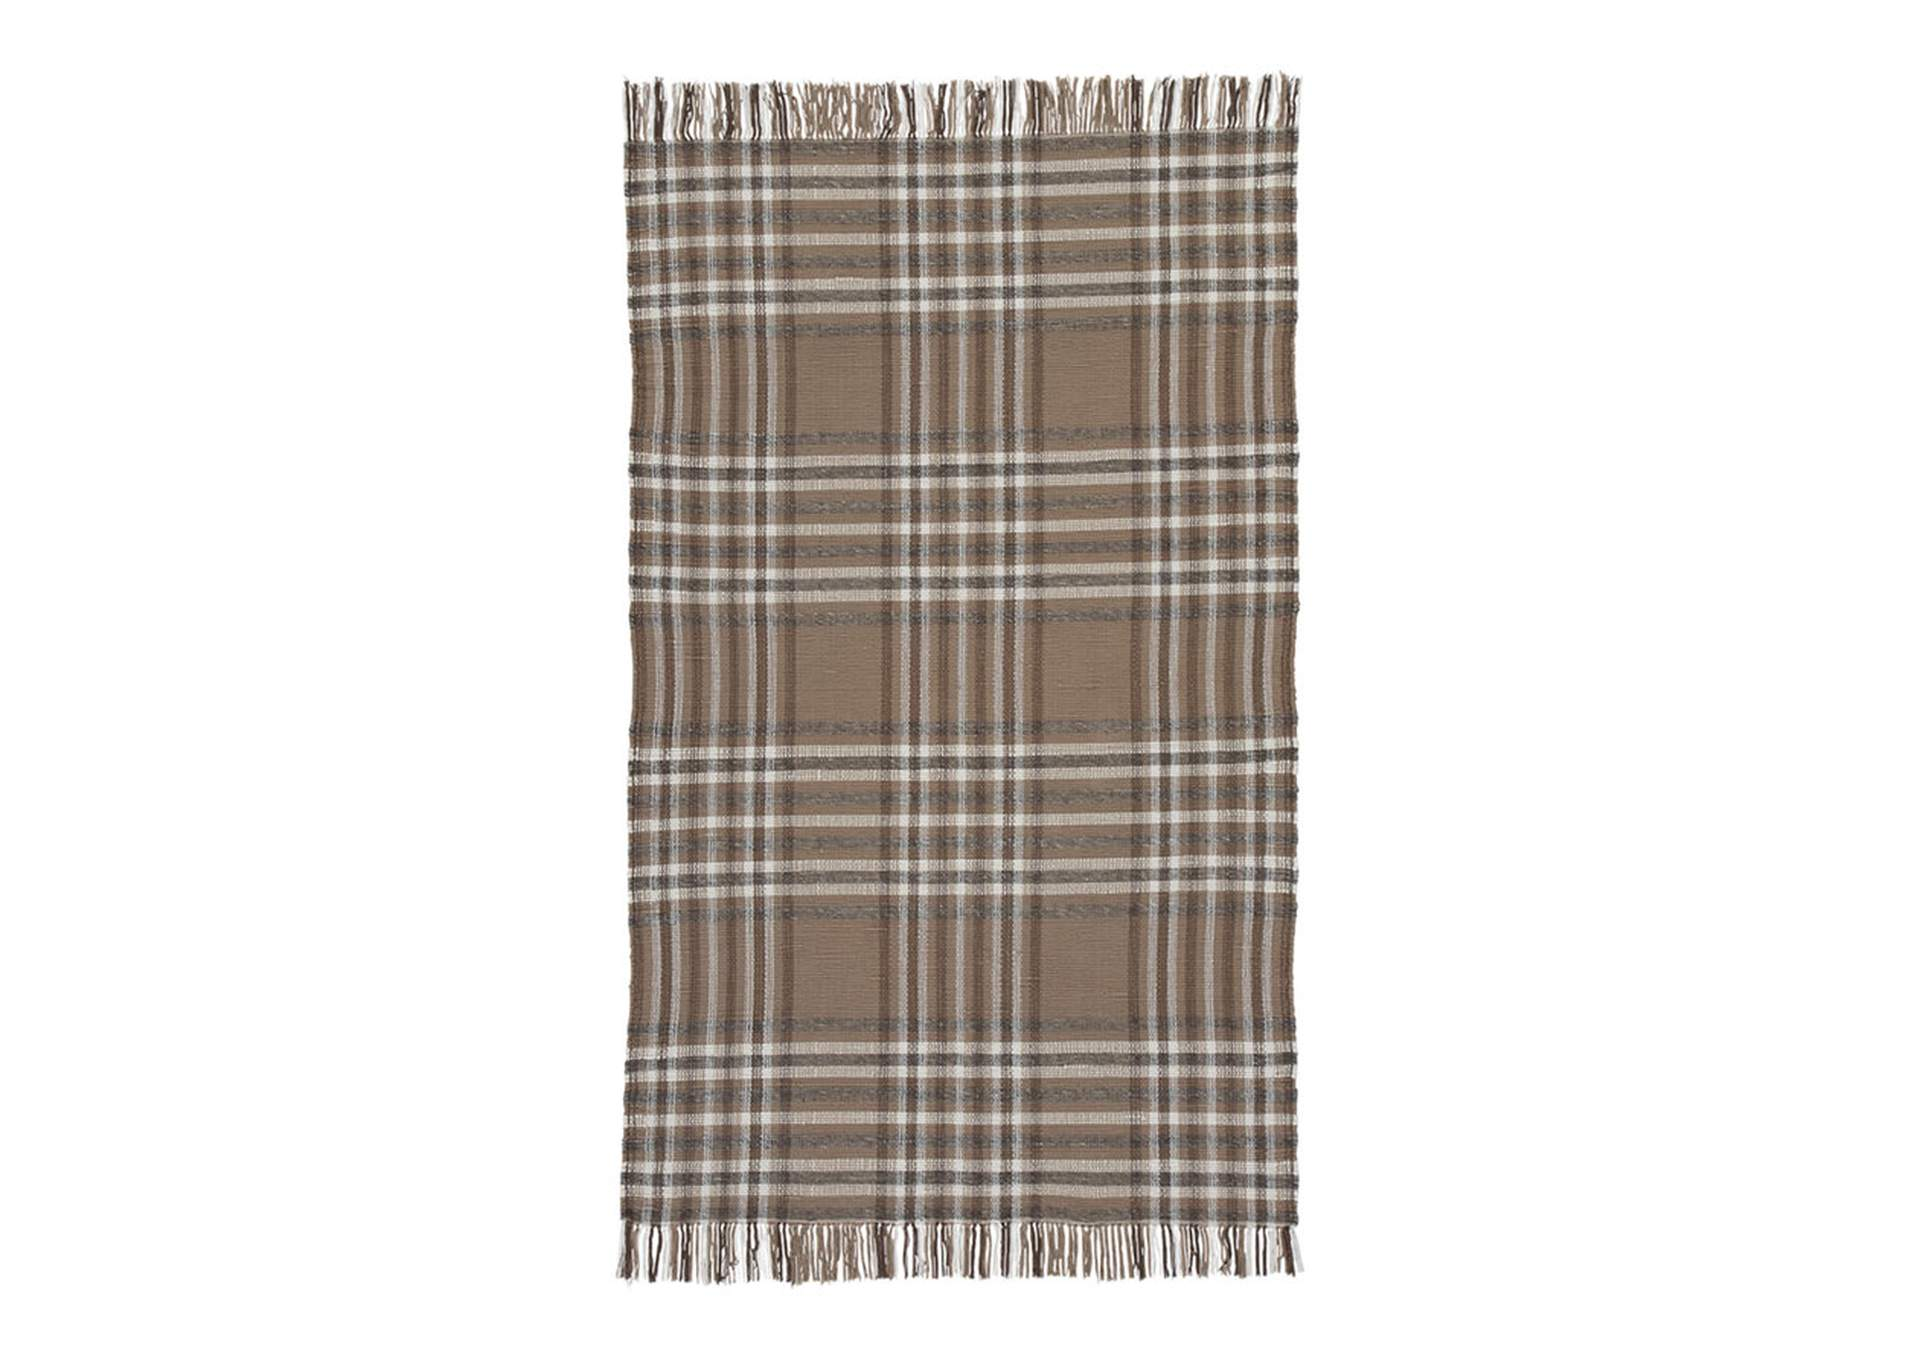 Hardy Beige/Brown Medium Rug,Direct To Consumer Express